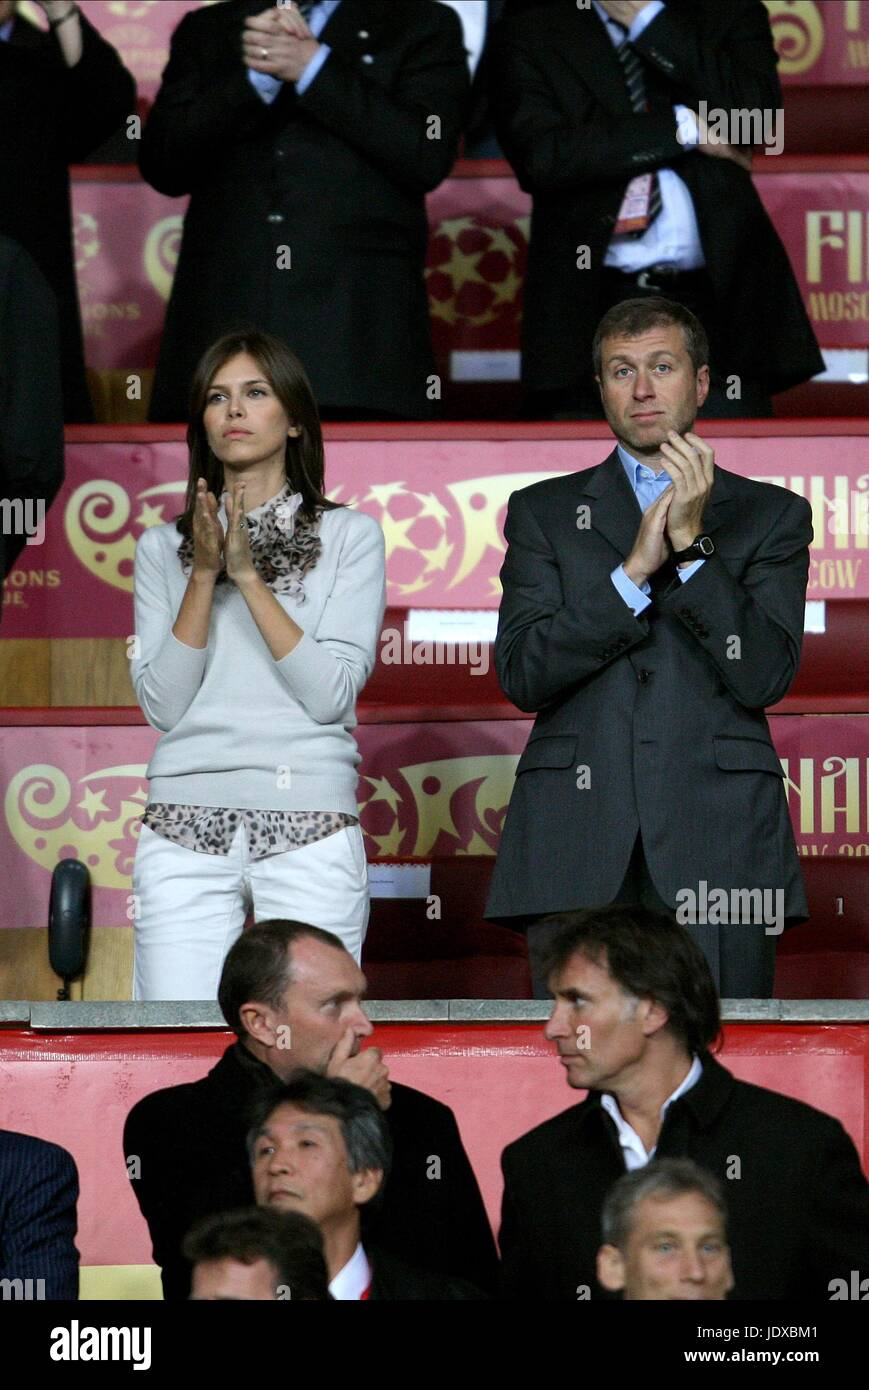 ed2bf58db78c5 ROMAN ABRAMOVICH   GIRLFRIEND MANCHESTER UNITED V CHELSEA LUZHNIKI STADIUM  MOSCOW RUSSIAN FEDERATION 21 May 2008